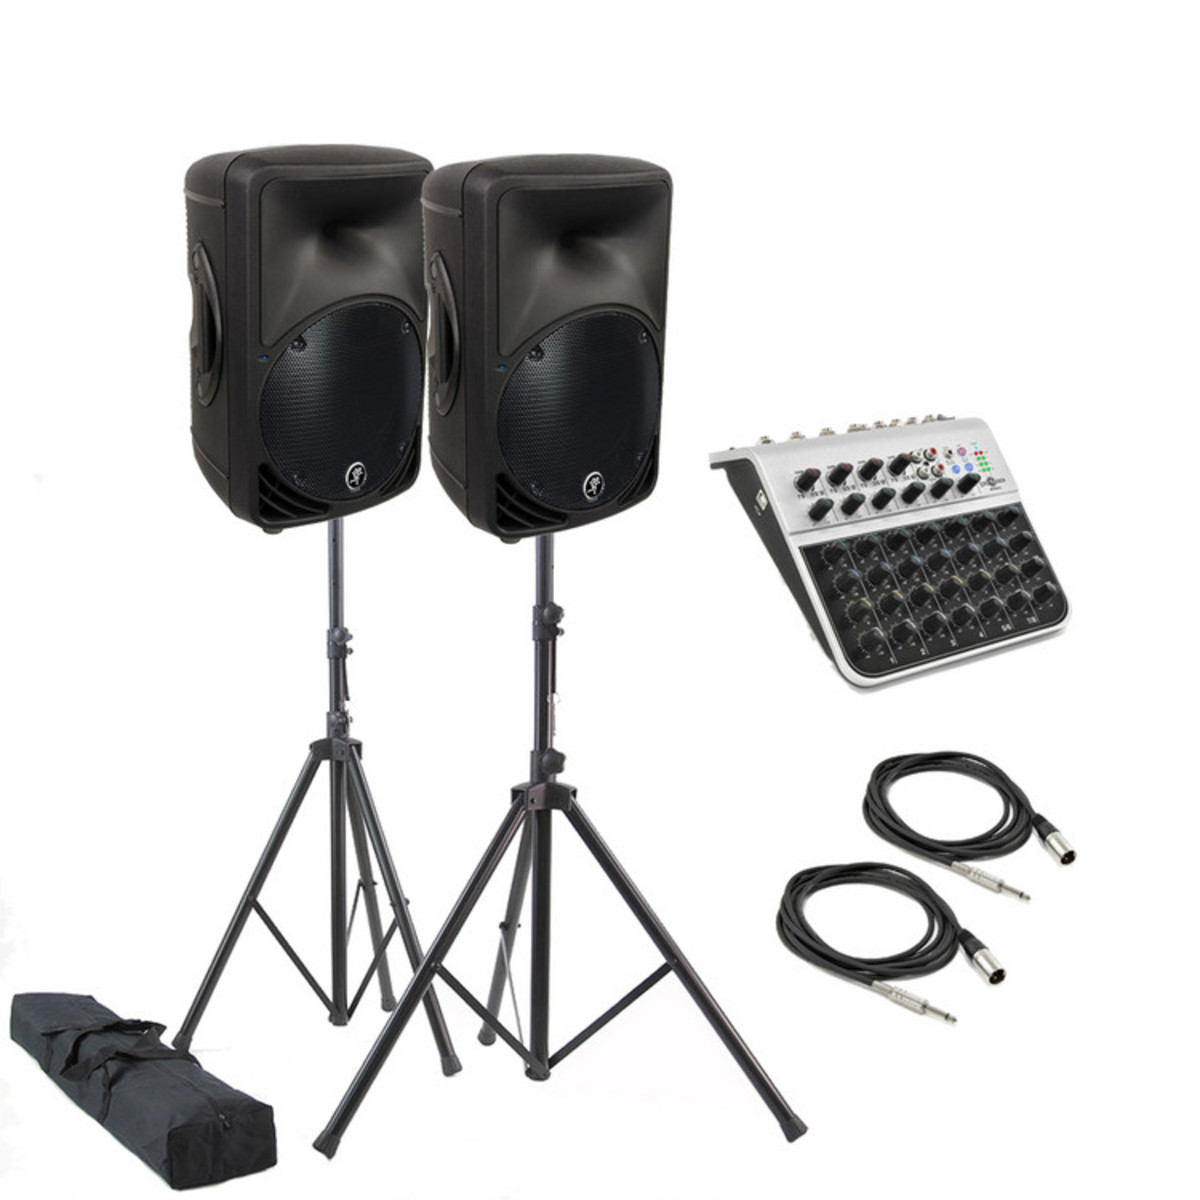 disc mackie srm350 v2 active pa system with mixer and speaker stands at gear4music. Black Bedroom Furniture Sets. Home Design Ideas